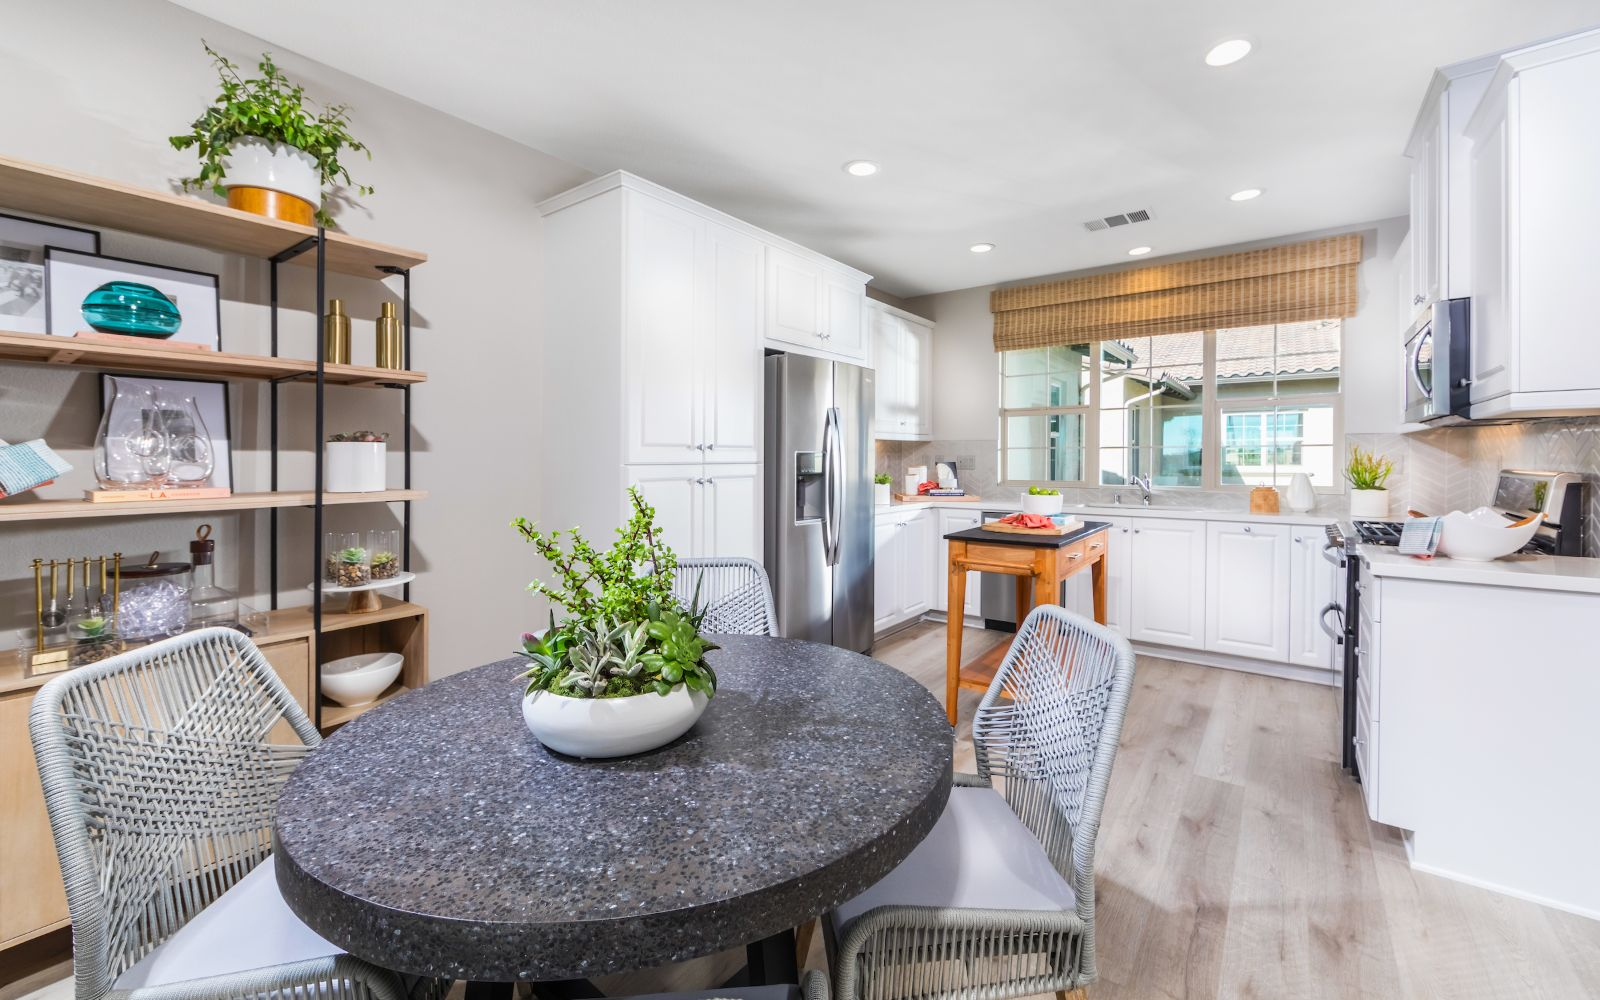 Towns Plan 4 Kitchen and Dining | Lantana @Beach in Stanton, CA | Brookfield Residential